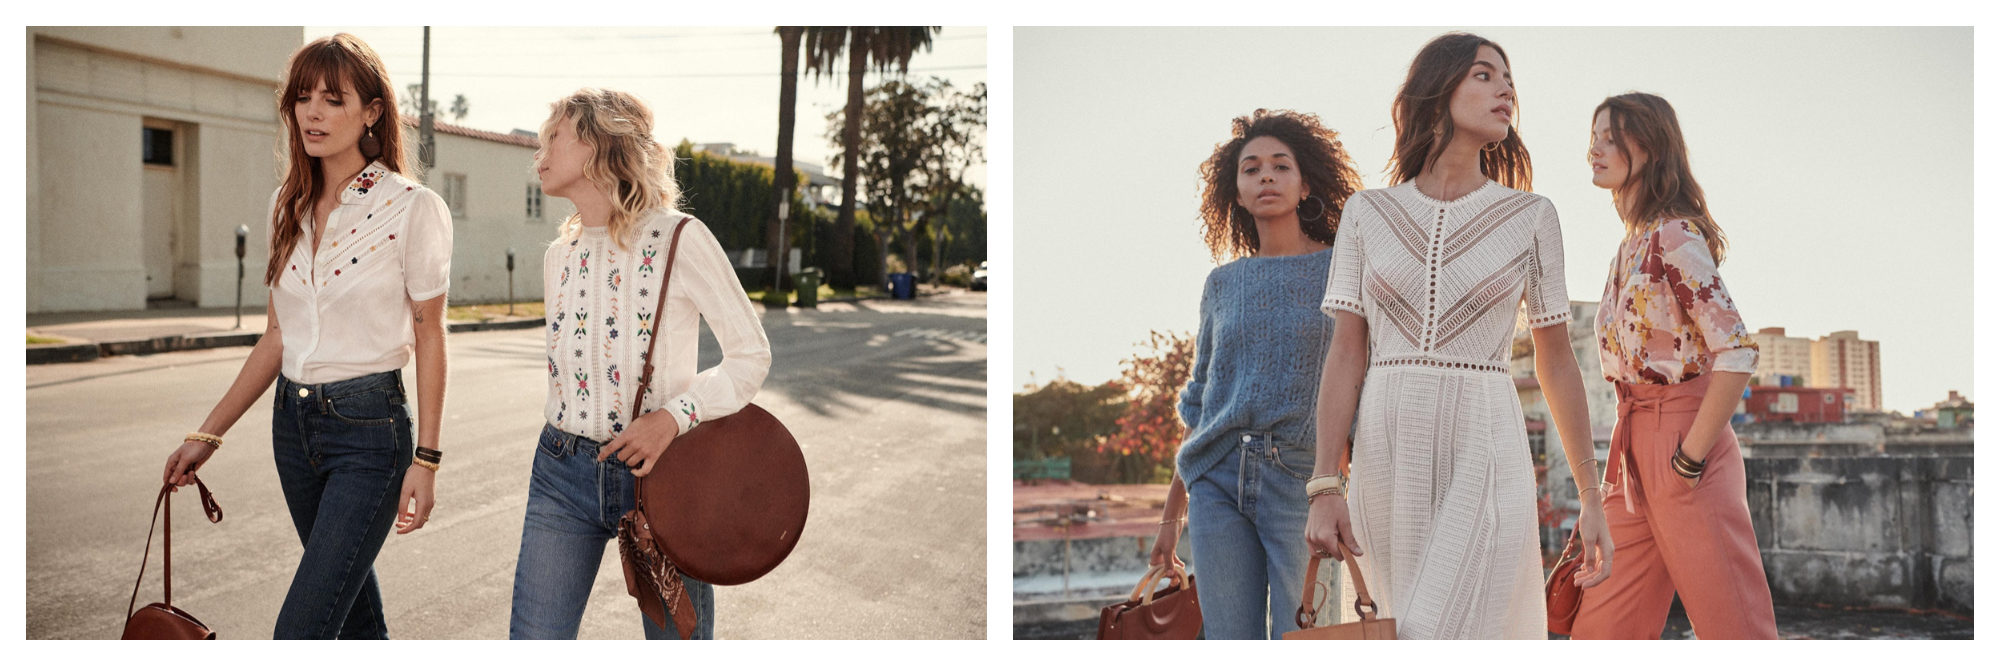 Parisian fashion brand Sézane is also know for its leather bags, like these large round pieces, as well as its well-cut white blouses (left) and dresses (right).